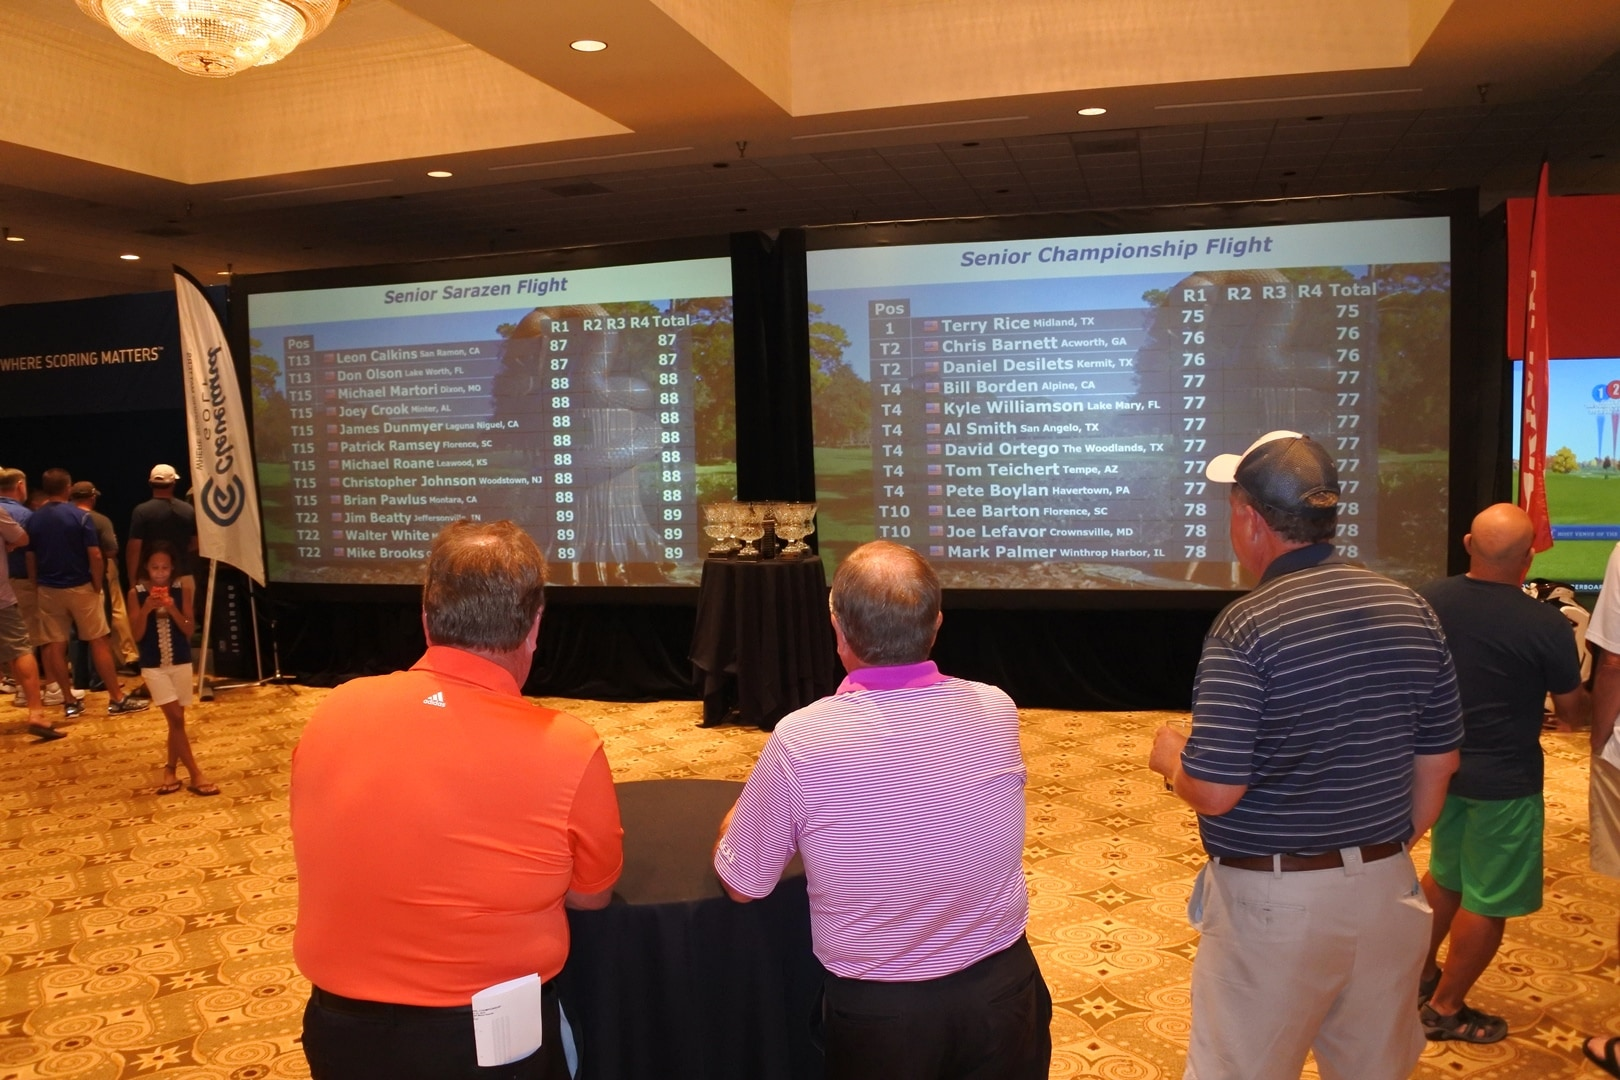 Day 1 results